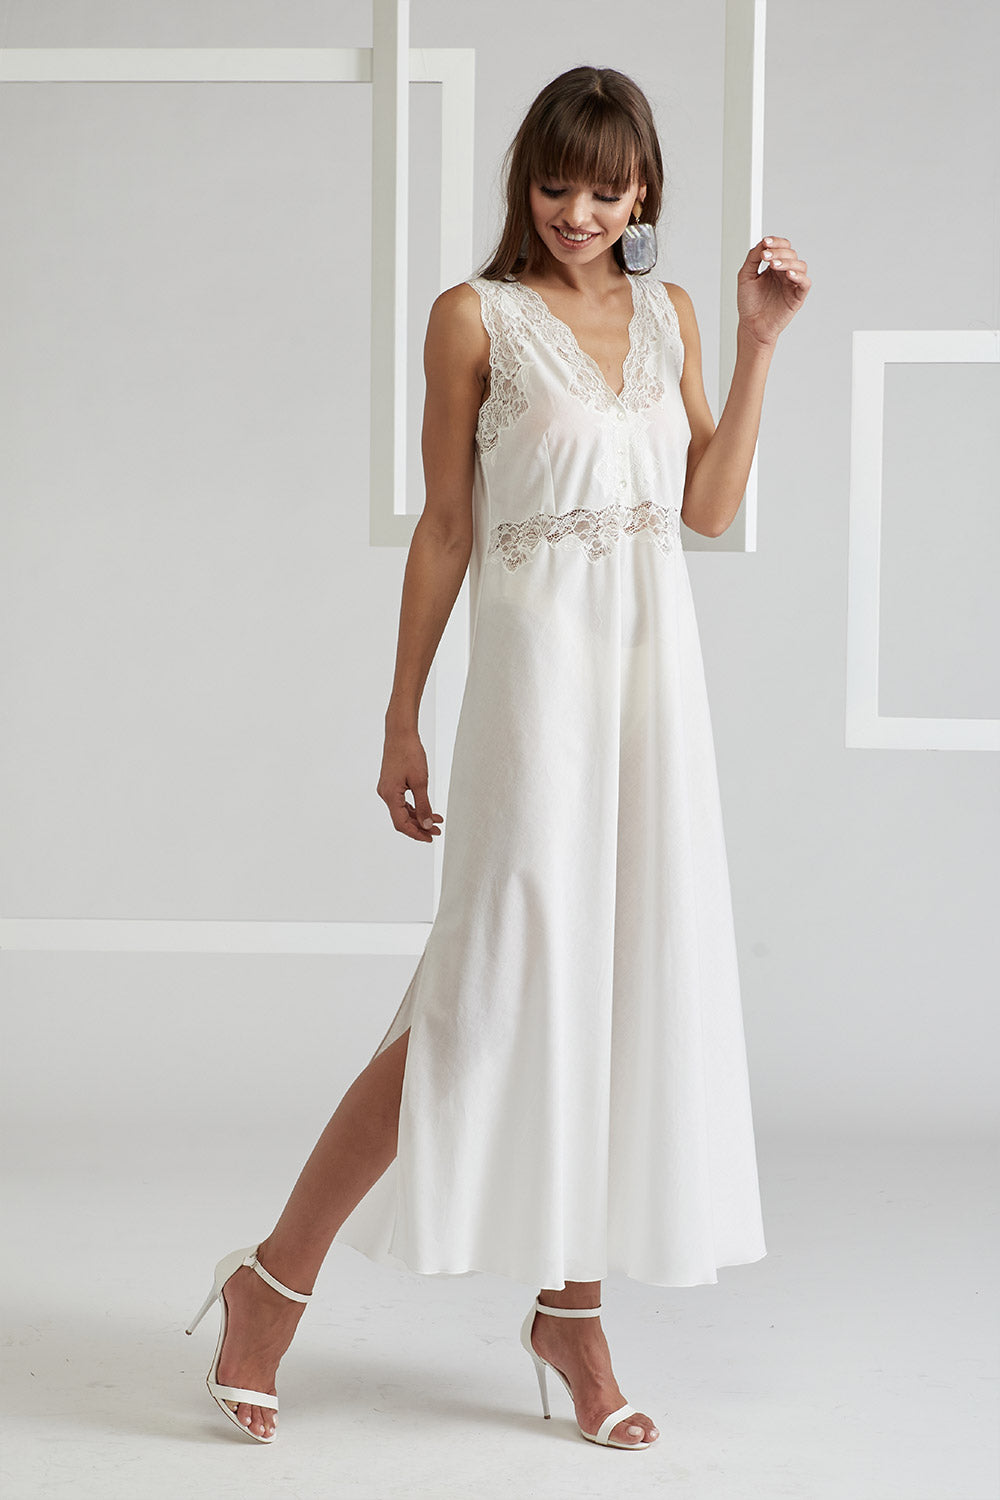 Trimmed Cotton Vual Robe Set - Sheila (Off White) Off White - Sofia